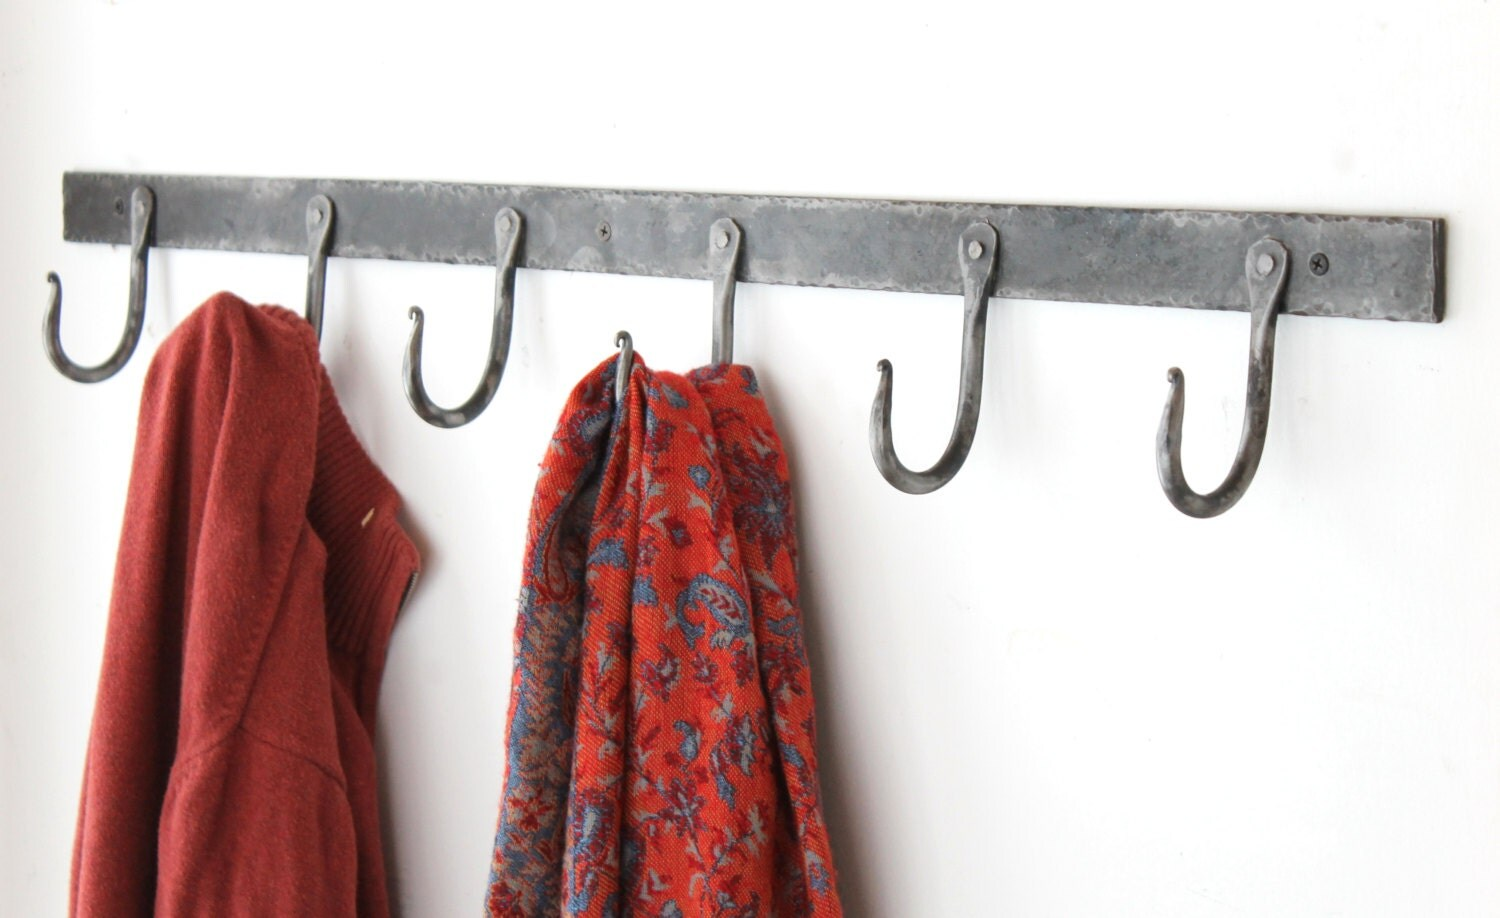 36 Rustic Hand Forged Coat Hook Rack By Blackdogironworks